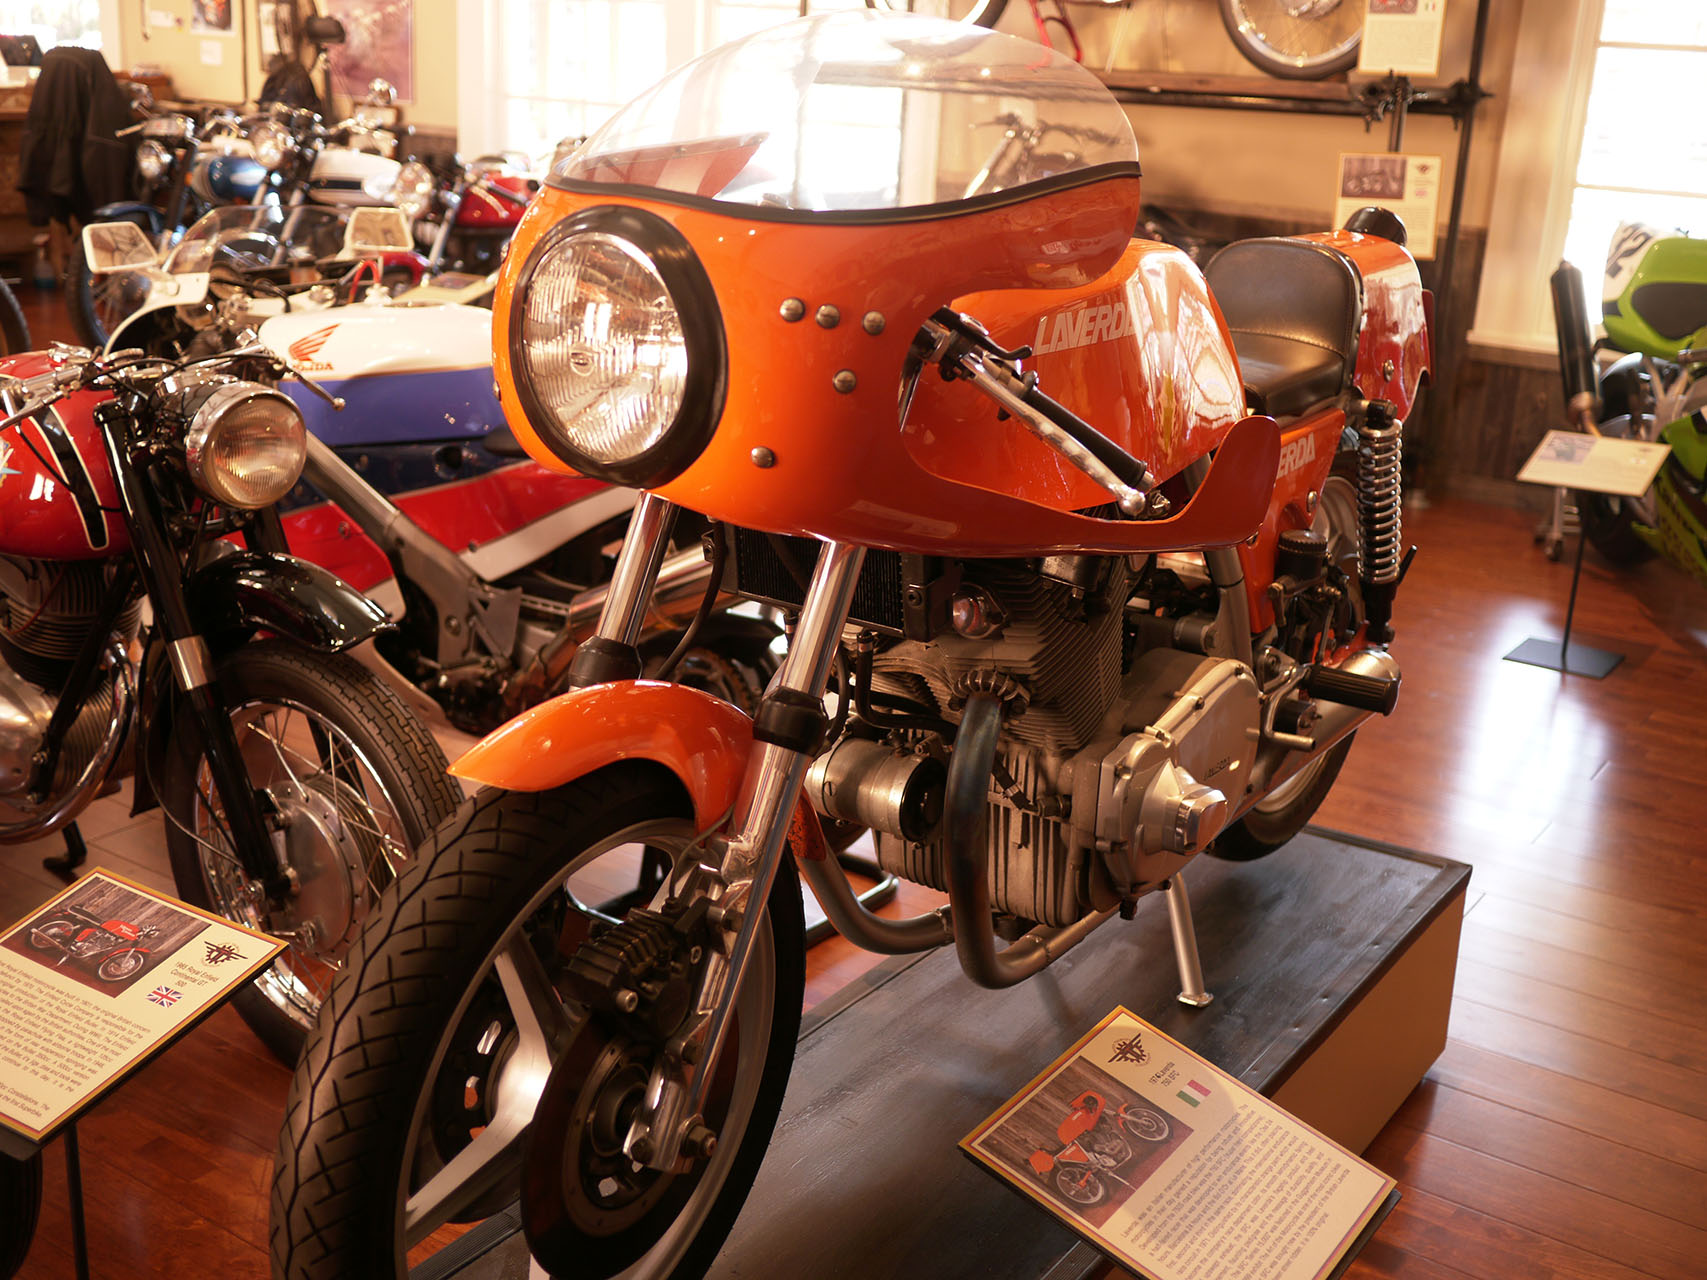 Laverda! Laverda!aaah Laverda! The grand Italian hot rod. More exclusive than Ducati or even MV. In this case an SFC 750 twin built specifically for Rob Talbott and personally delivered by Signor Laverda,the only person ever to ride it.